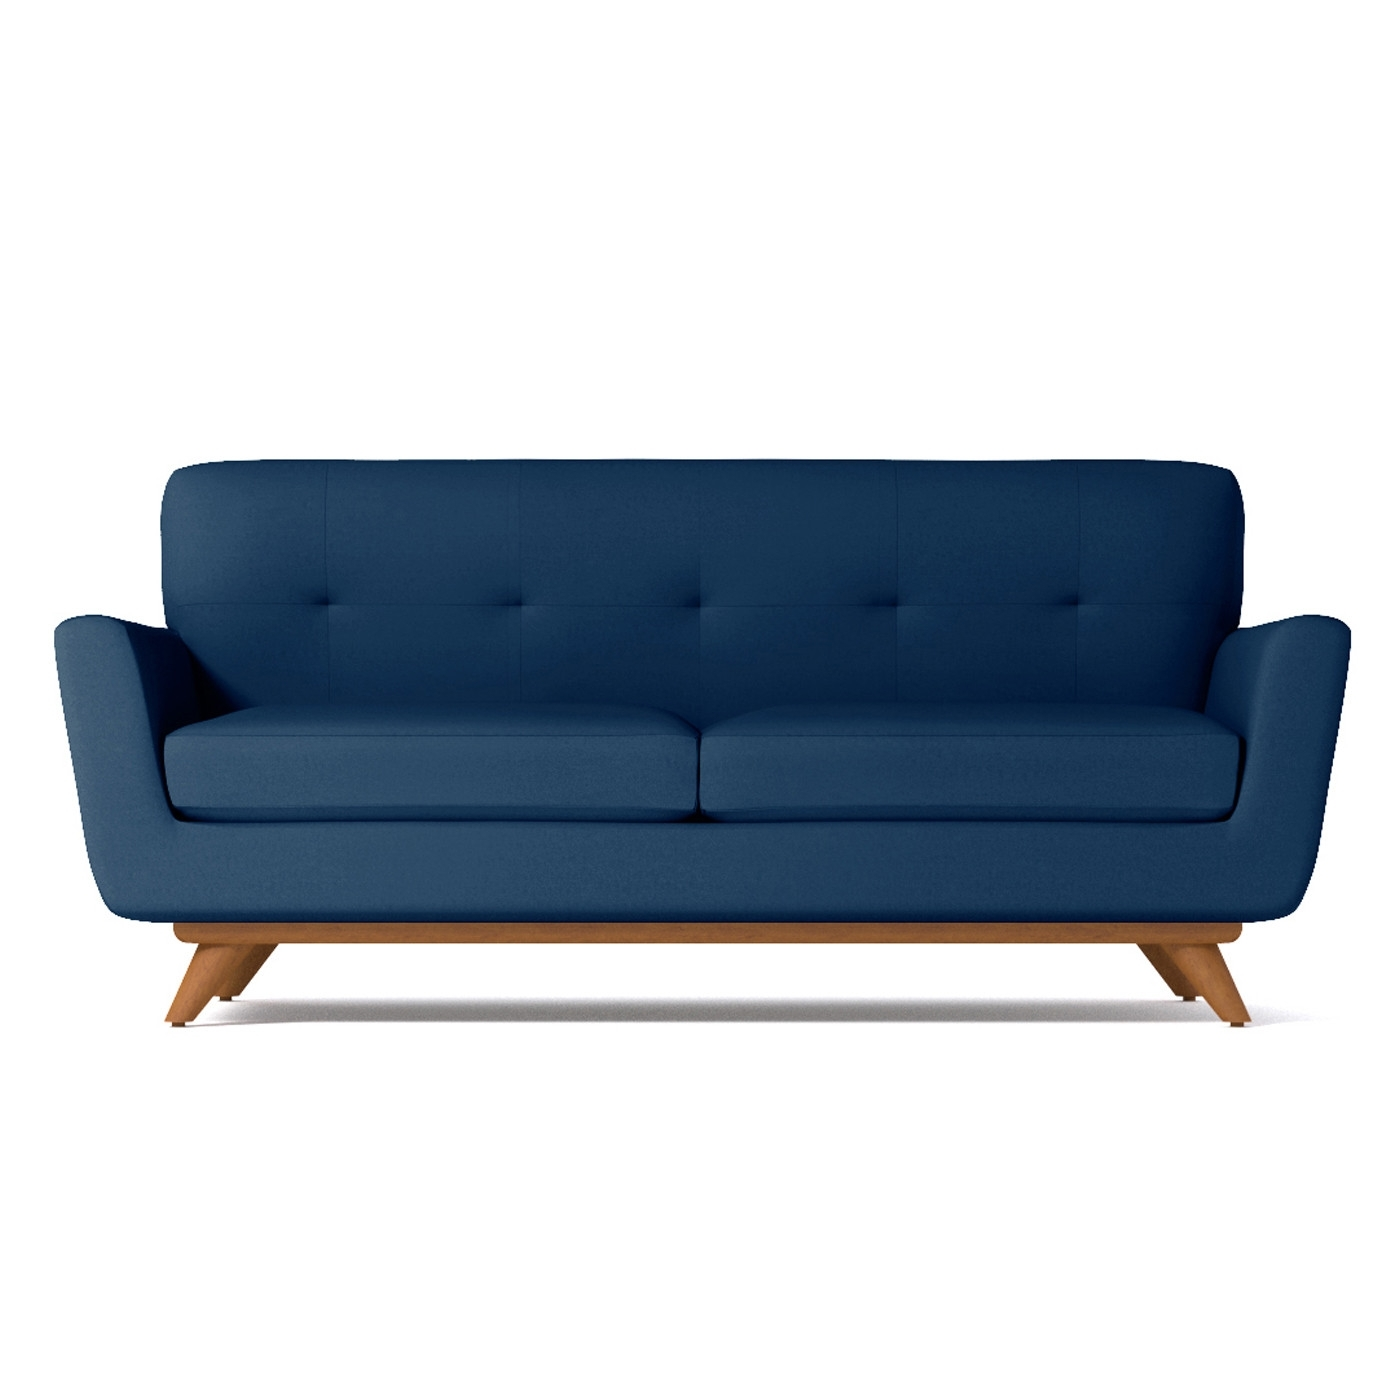 Awesome Apartment Size Sofa: Best Furniture For Small Living Room Inside Preferred Apartment Size Sofas (View 7 of 20)